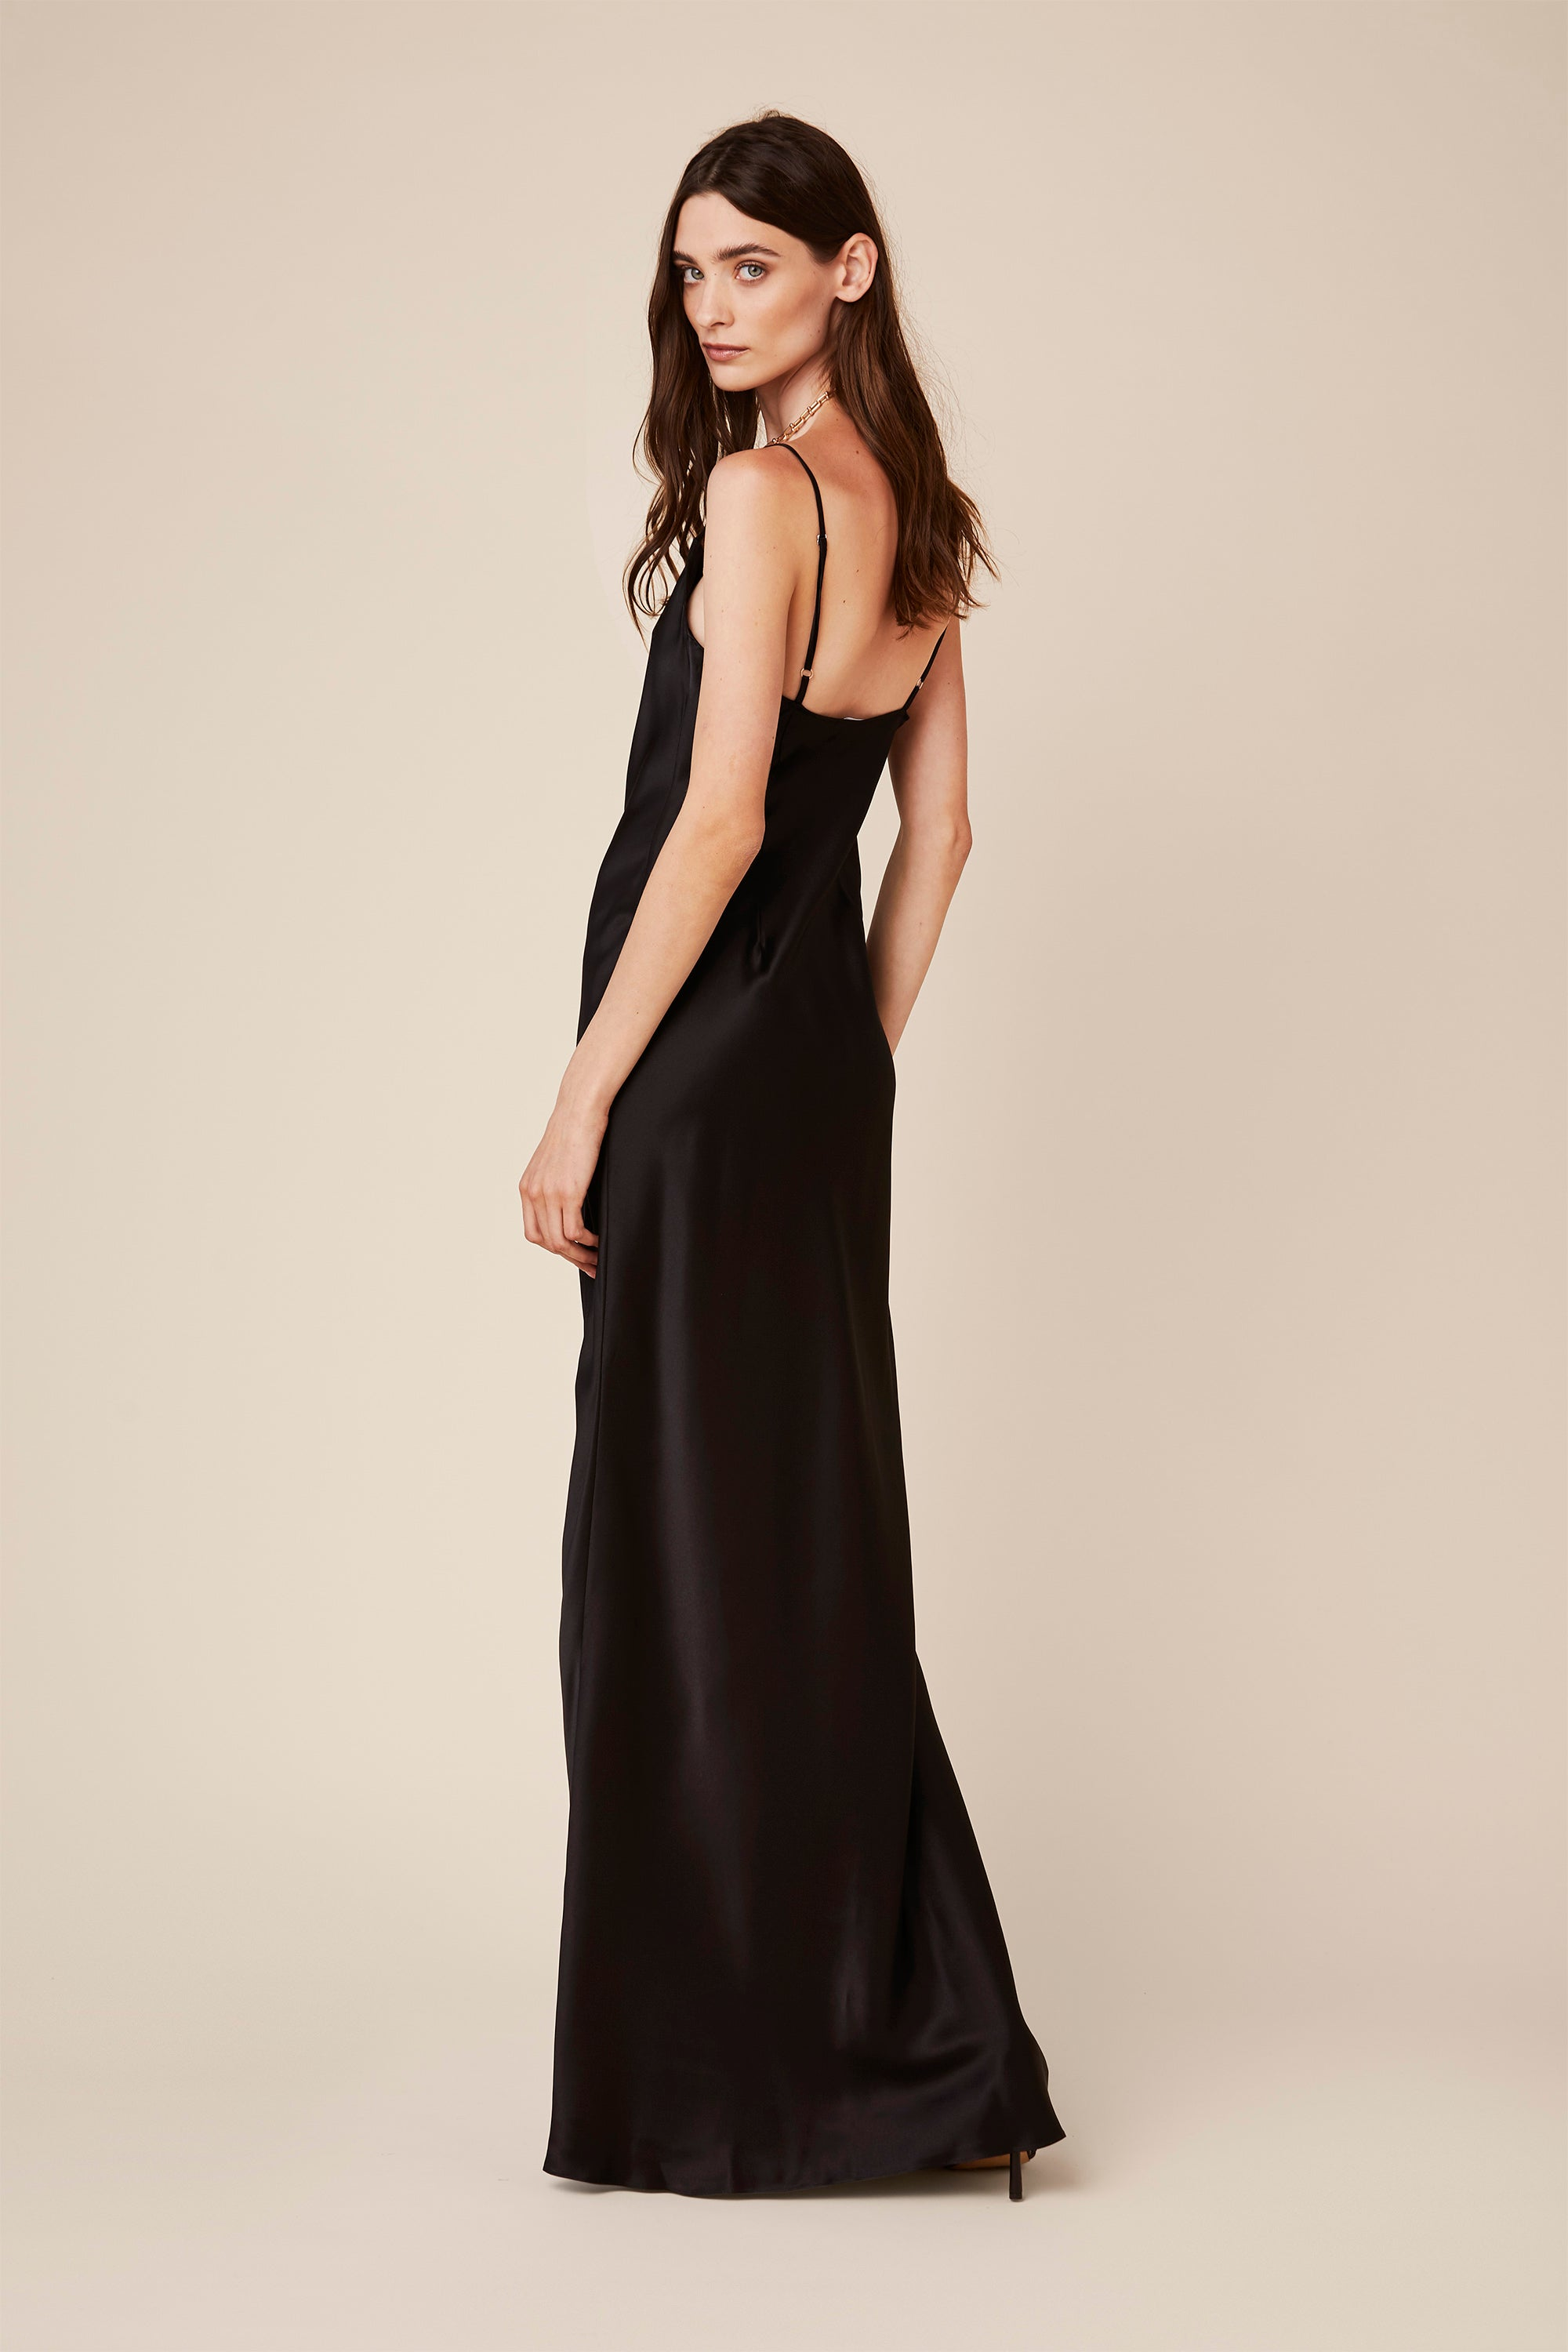 CHASE SILK DRESS | BLACK - Final Sale